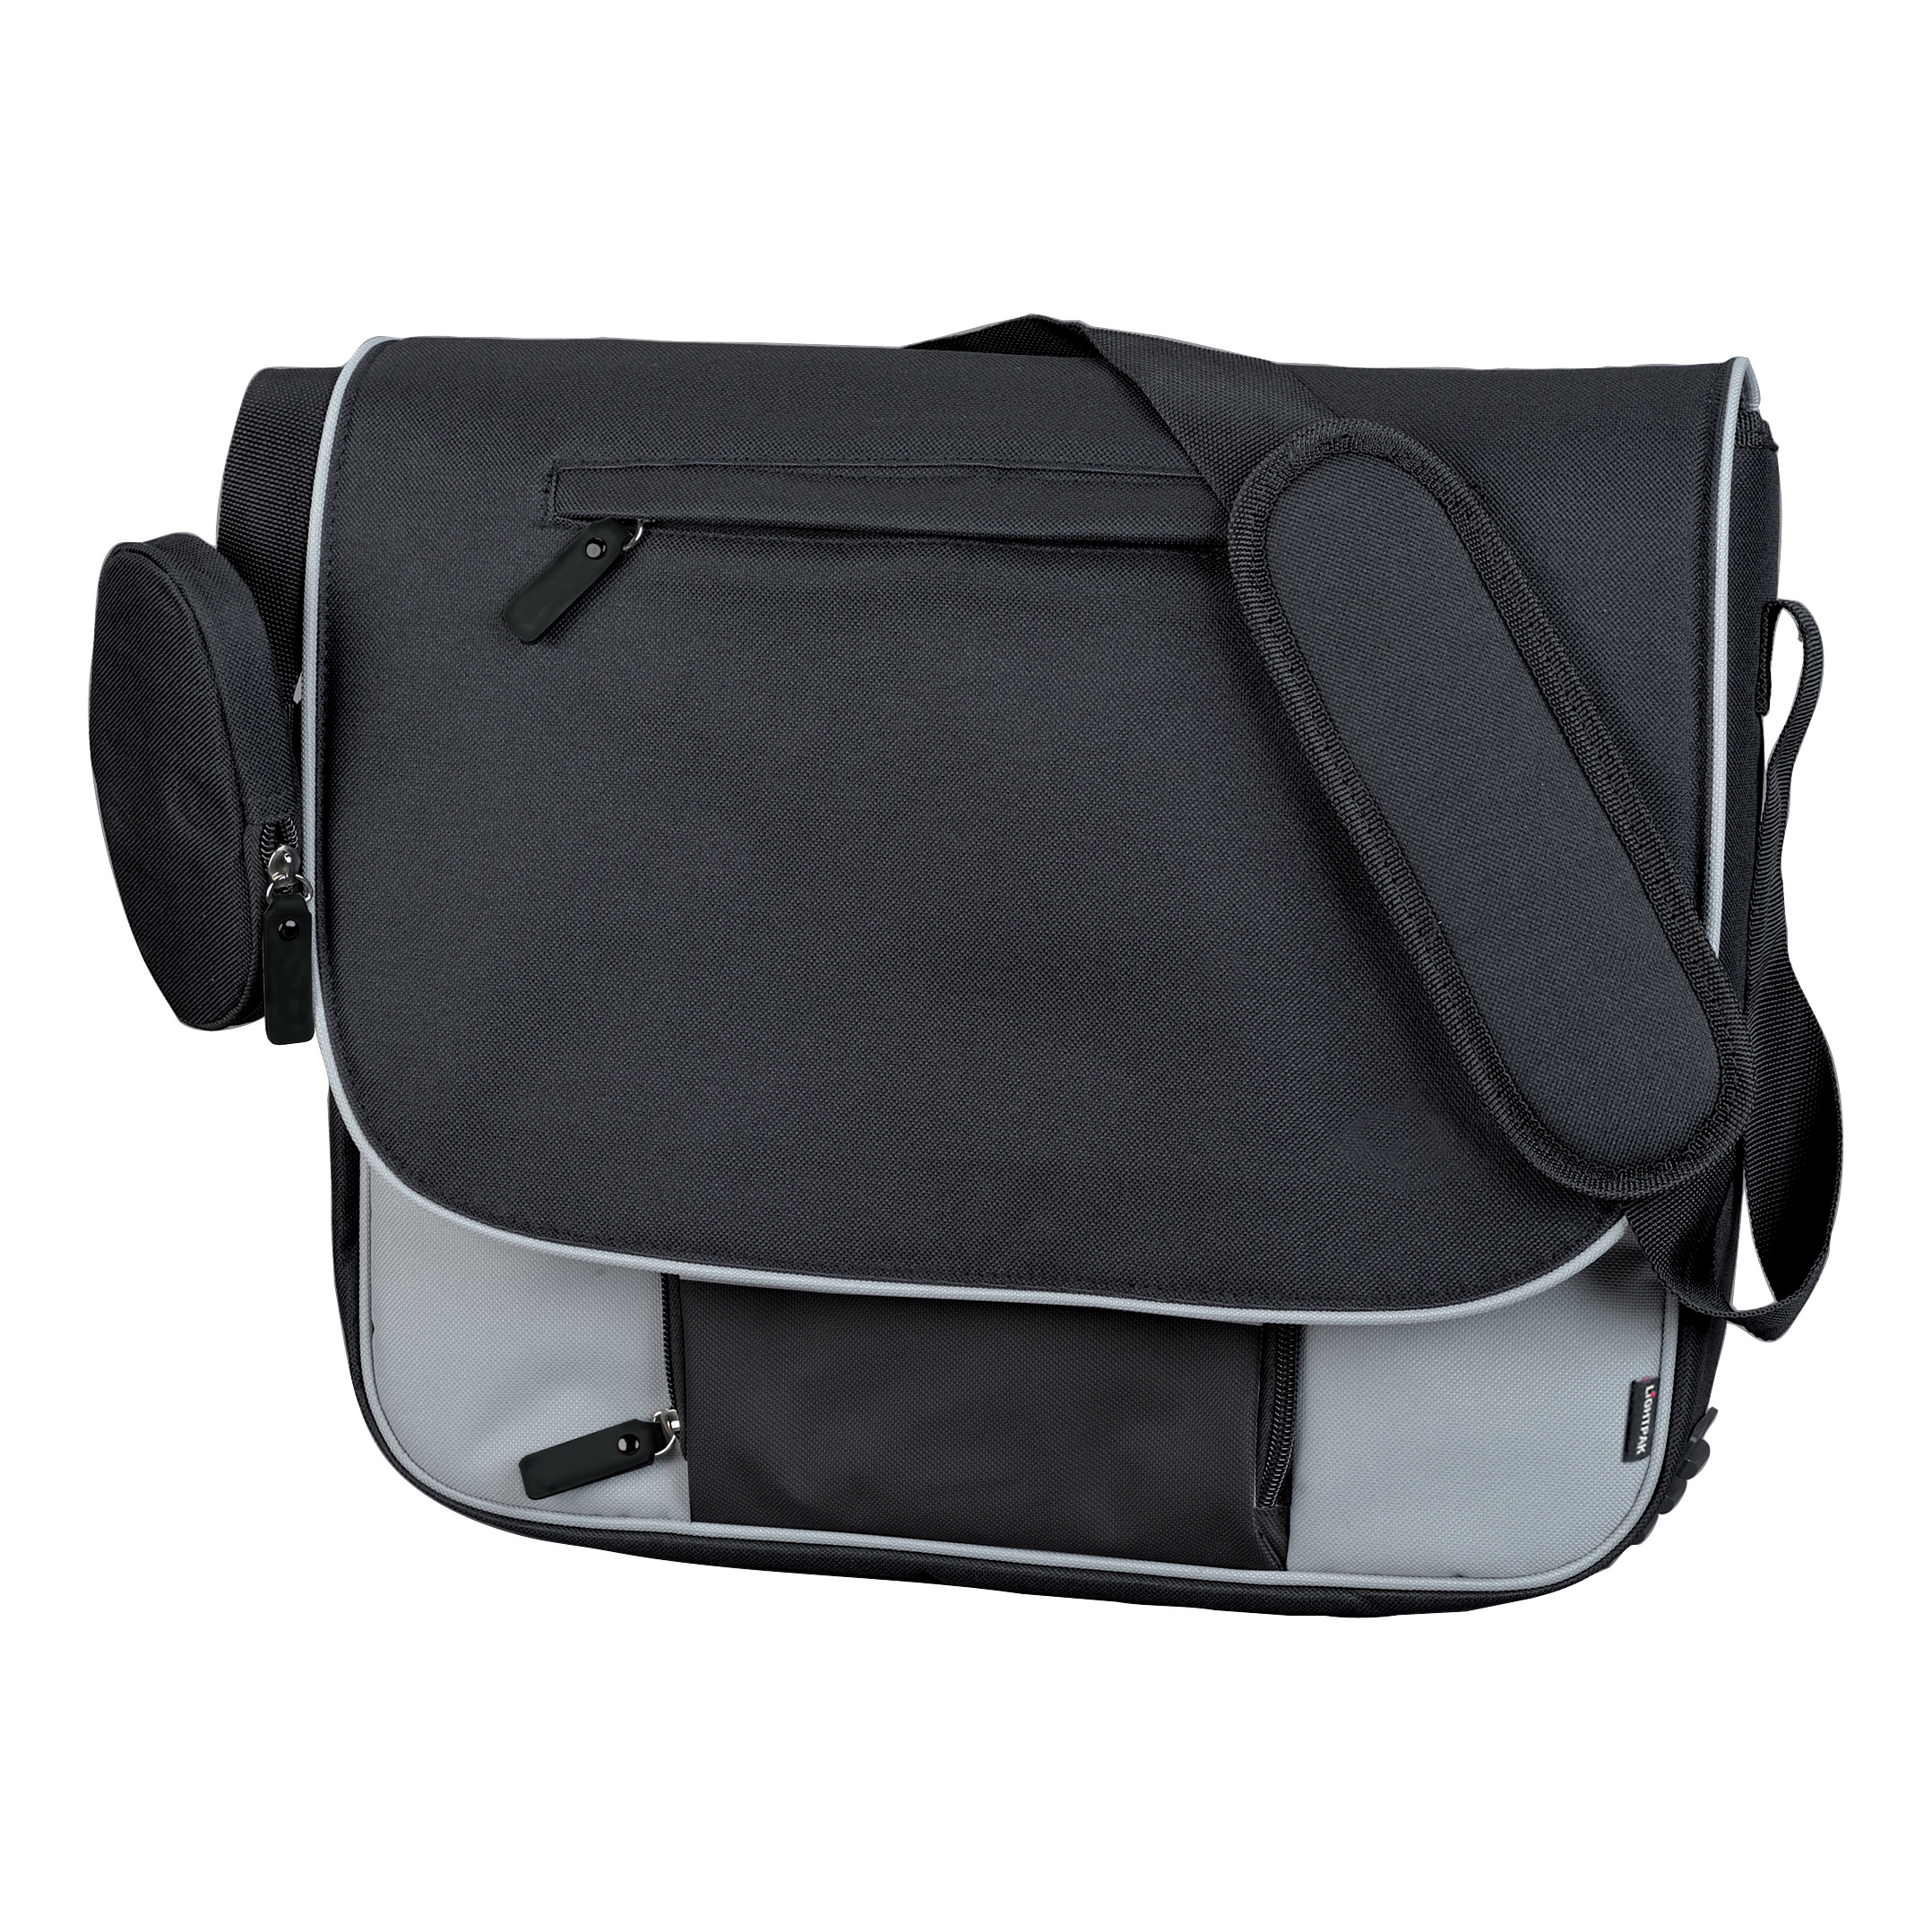 Lightpak Tron Messenger Bag Grey Ref 46113